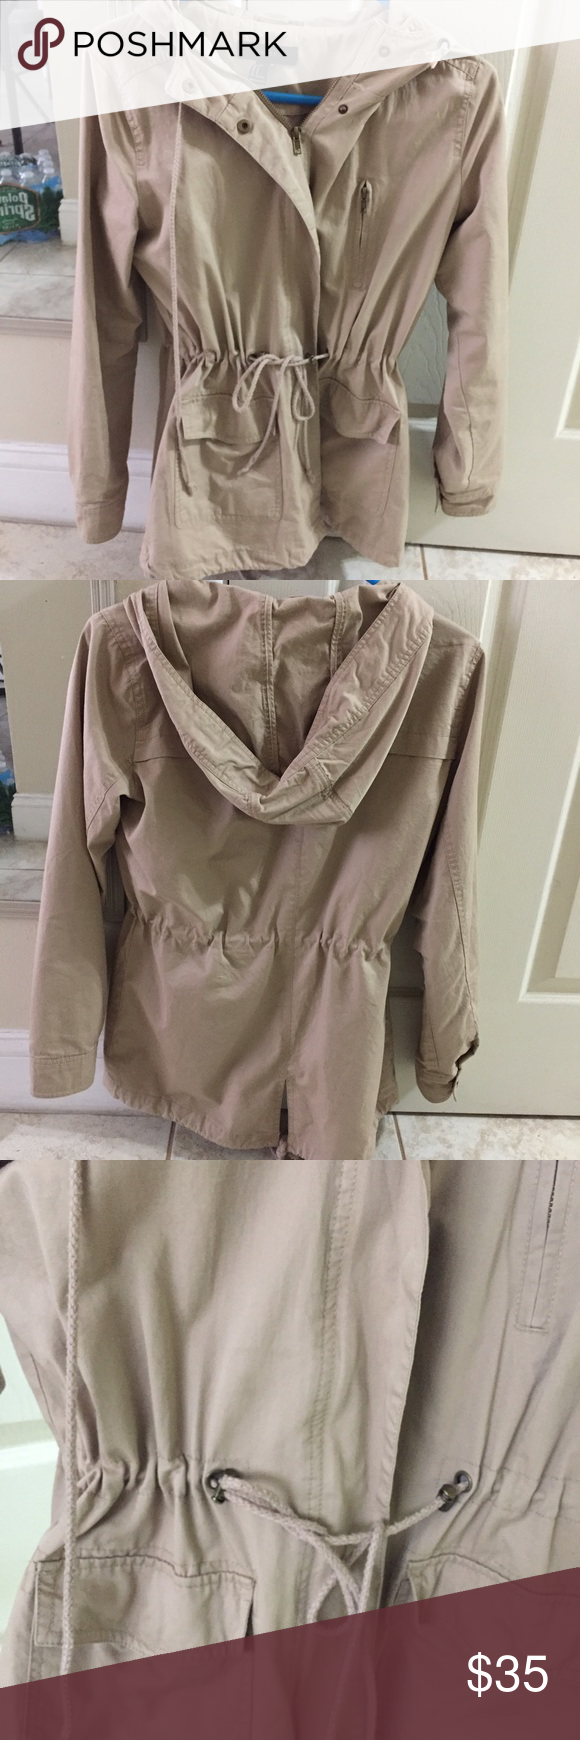 HOODED DRAWSTRING UTILITY JACKET Color: Khaki. Worn throughout last fall. Good condition Forever 21 Jackets & Coats Utility Jackets